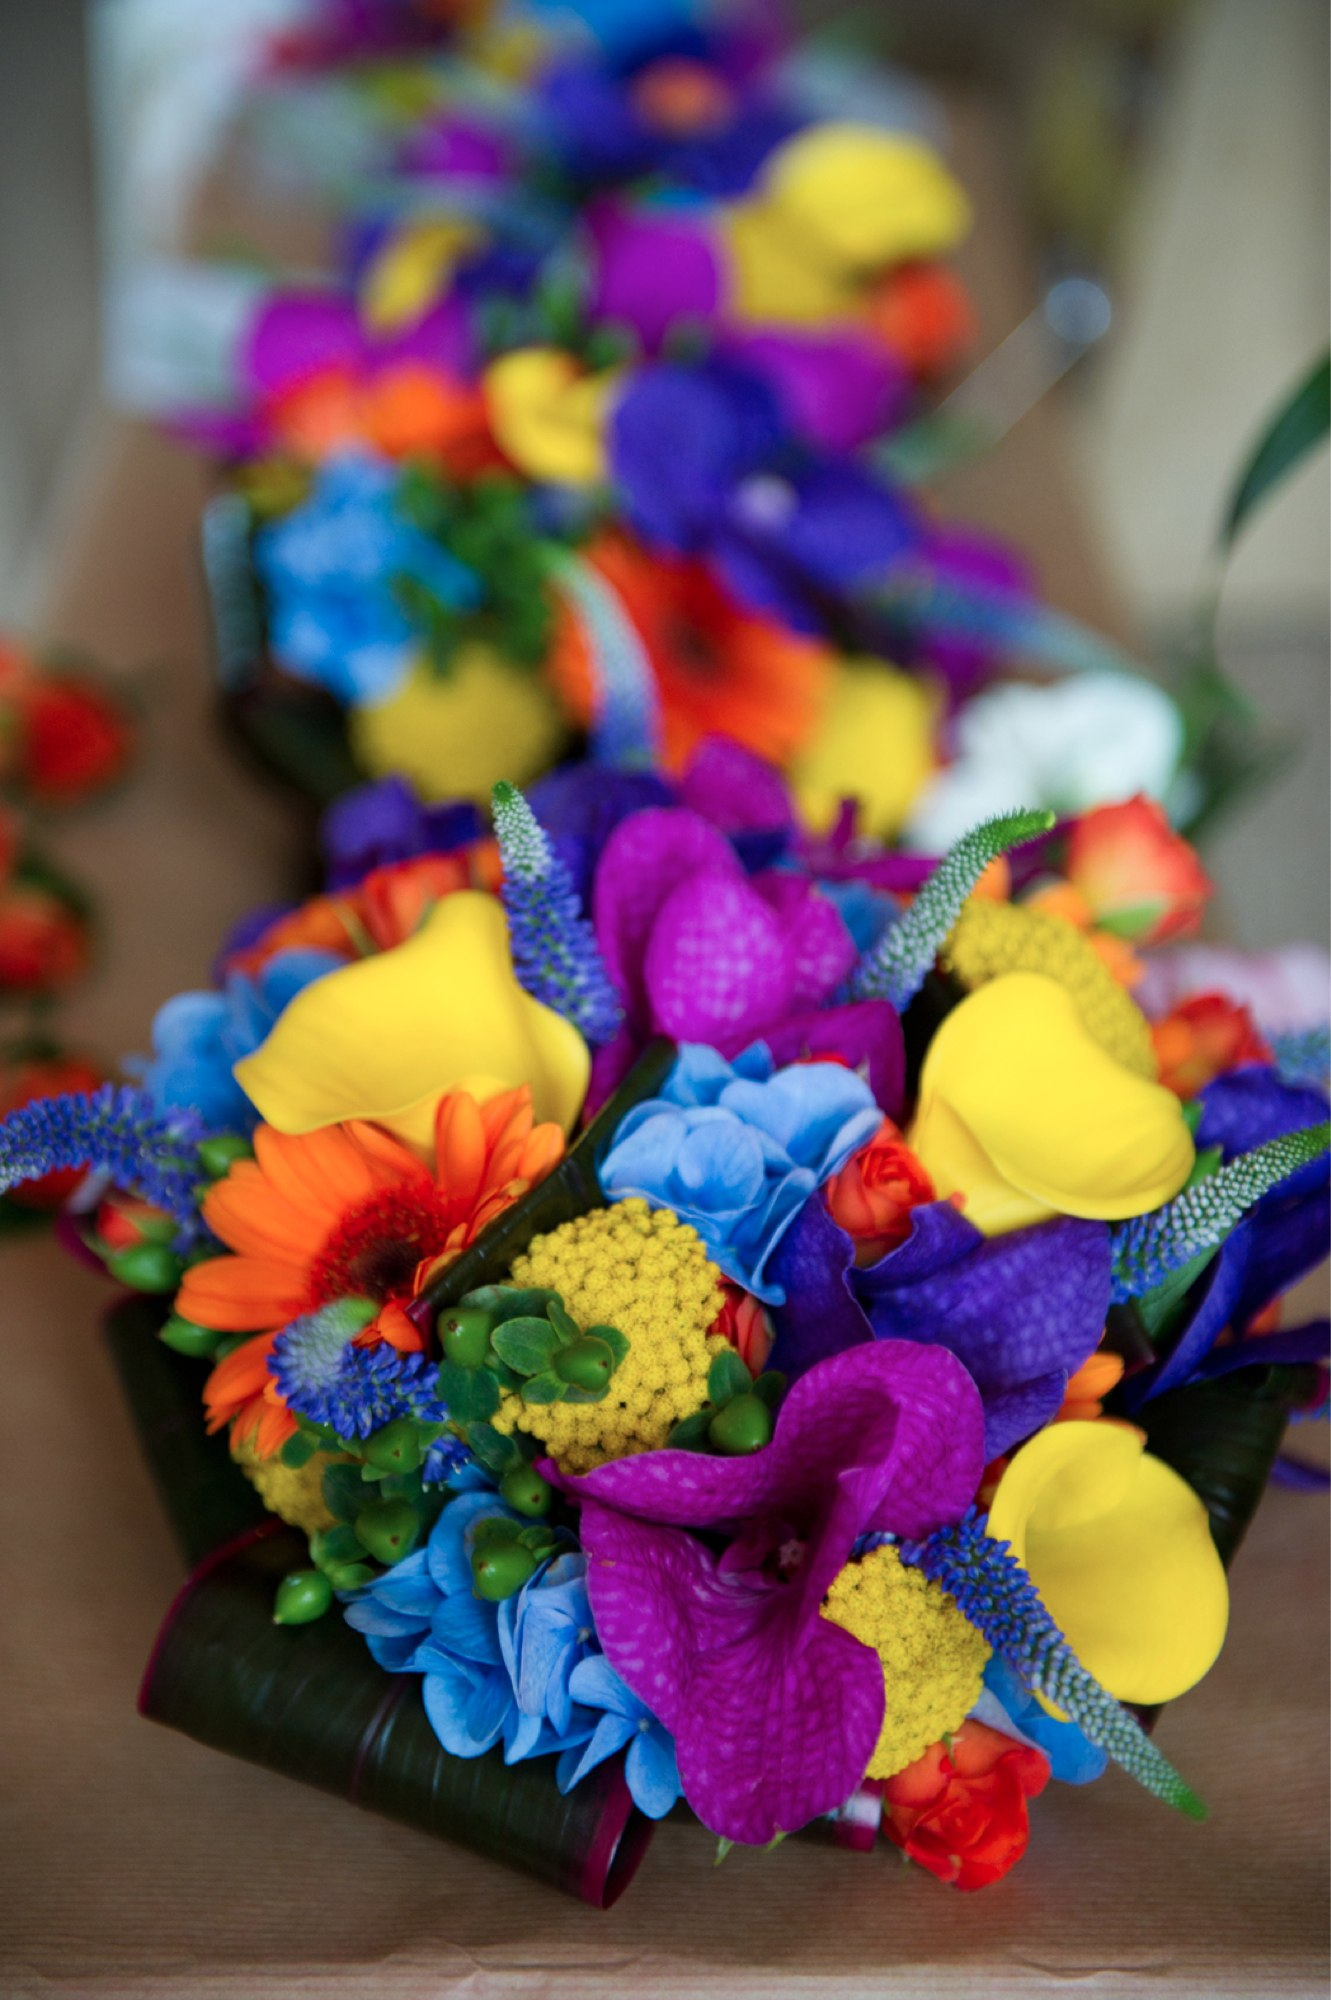 Vibrant florals are super eye-catching Photo: Goodbye Miss